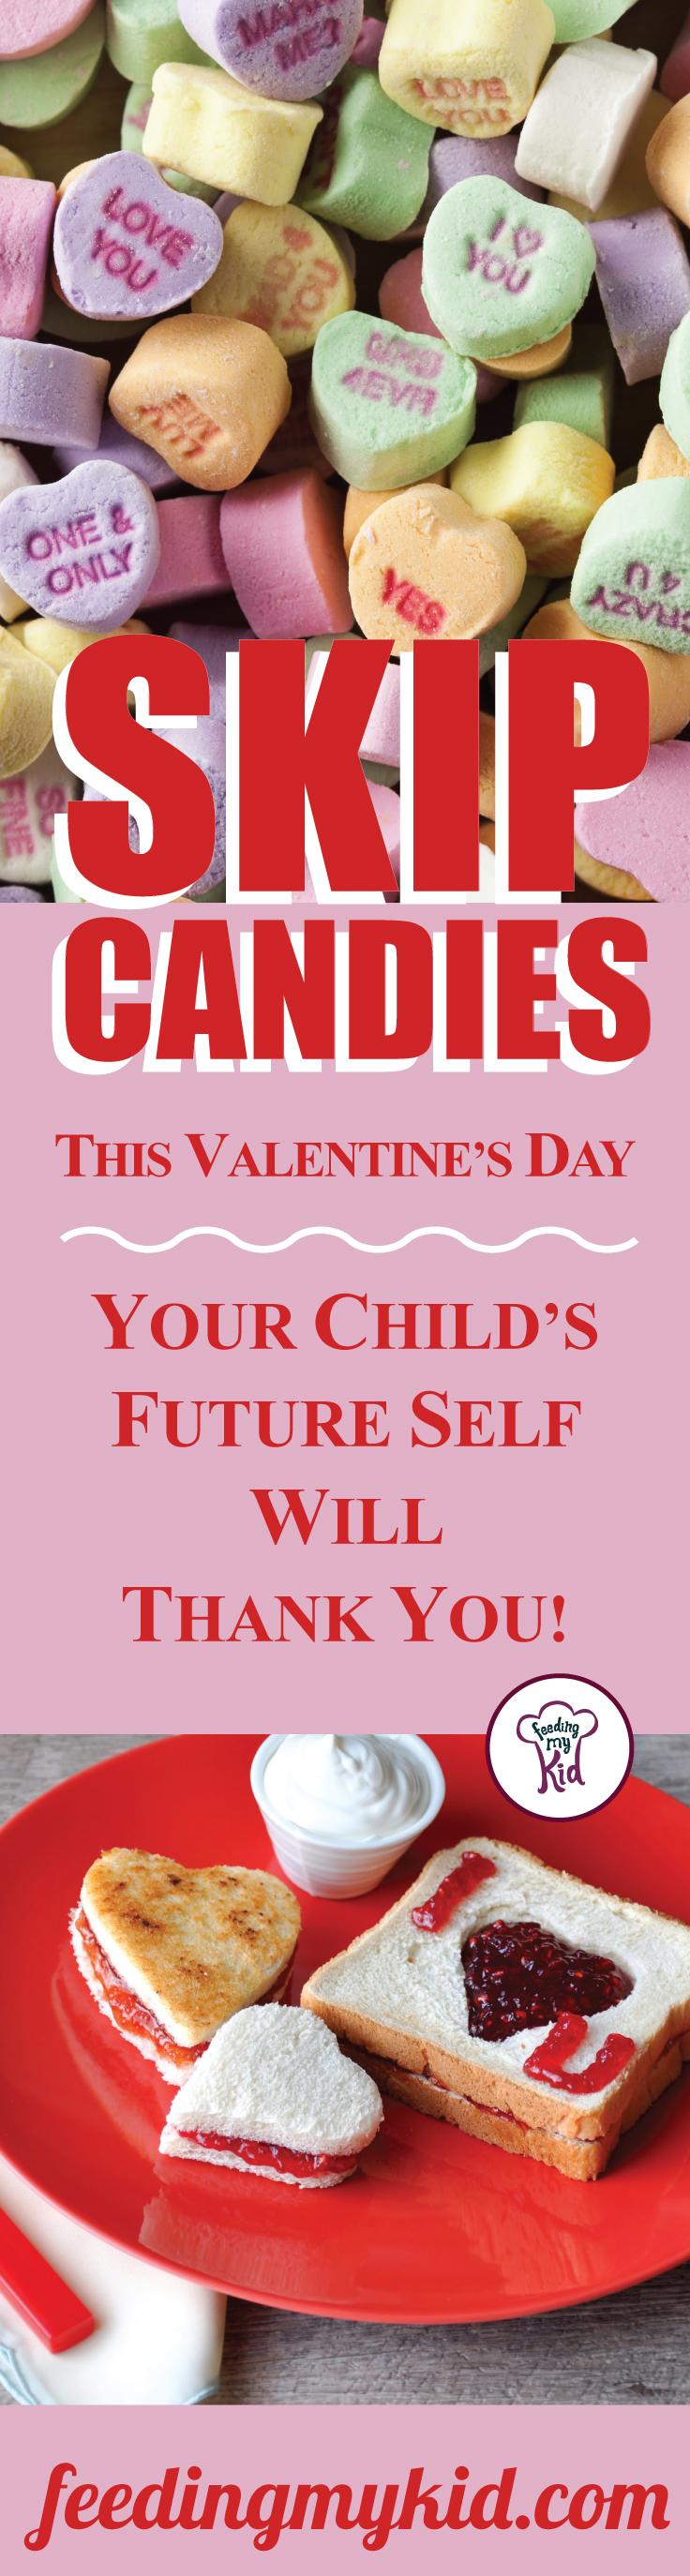 Skip Candies This Valentine's Day. Your Child's Future Self Will Thank You. - Instead of indulging in typical Valentine's Day sweets, why not make this year about healthy eating and developing good habits for your kids? With two thirds of all adults in the U.S. now overweight or obese and one-third of all children overweight or obese, why don't we start changing how we celebrate holidays?